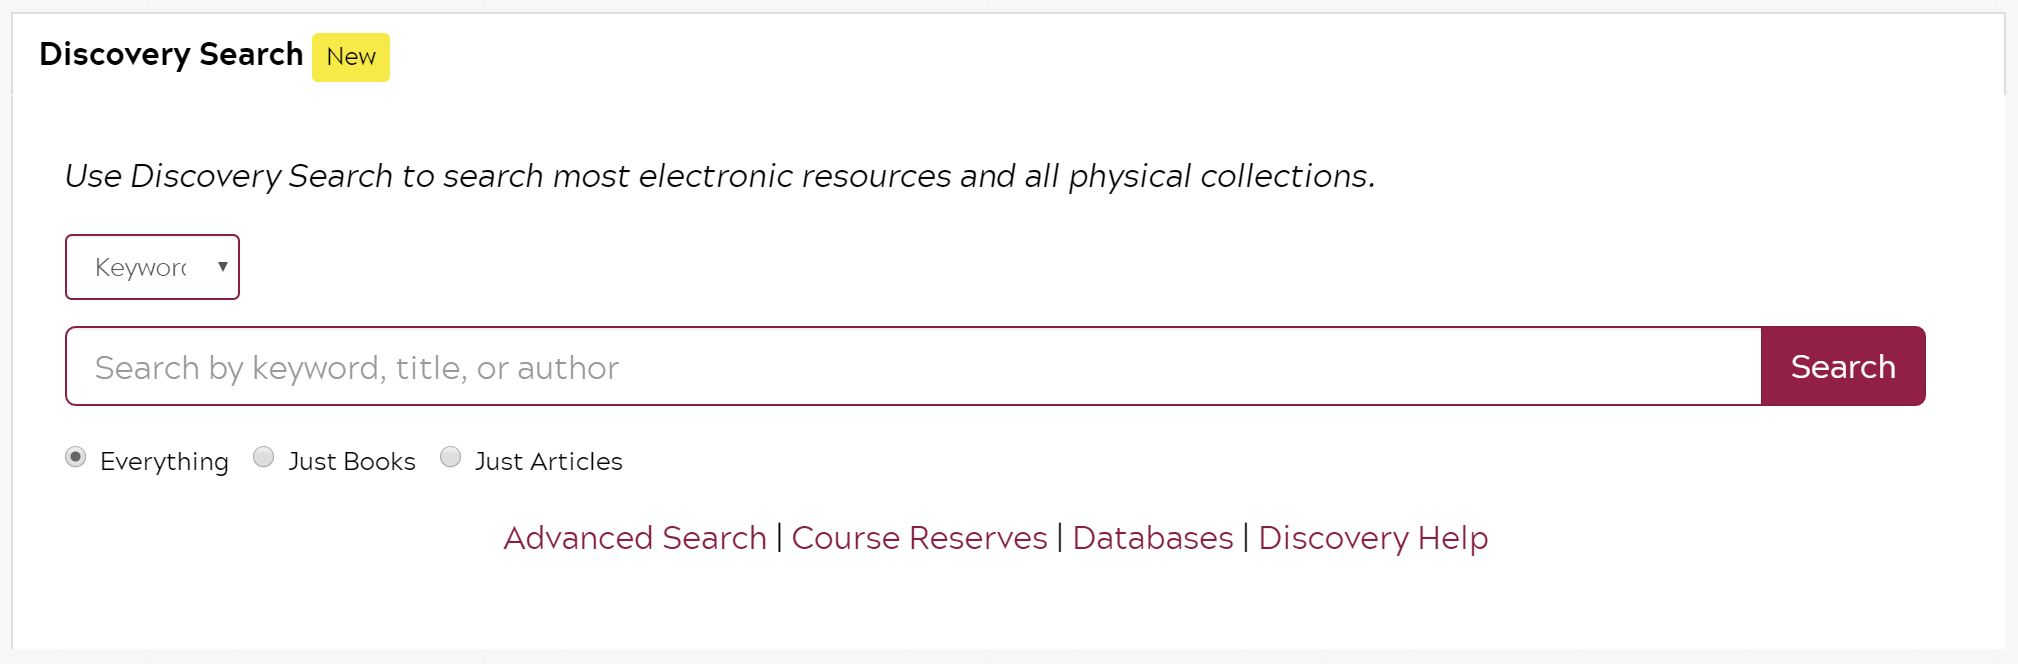 Basics search box for Discovery Search